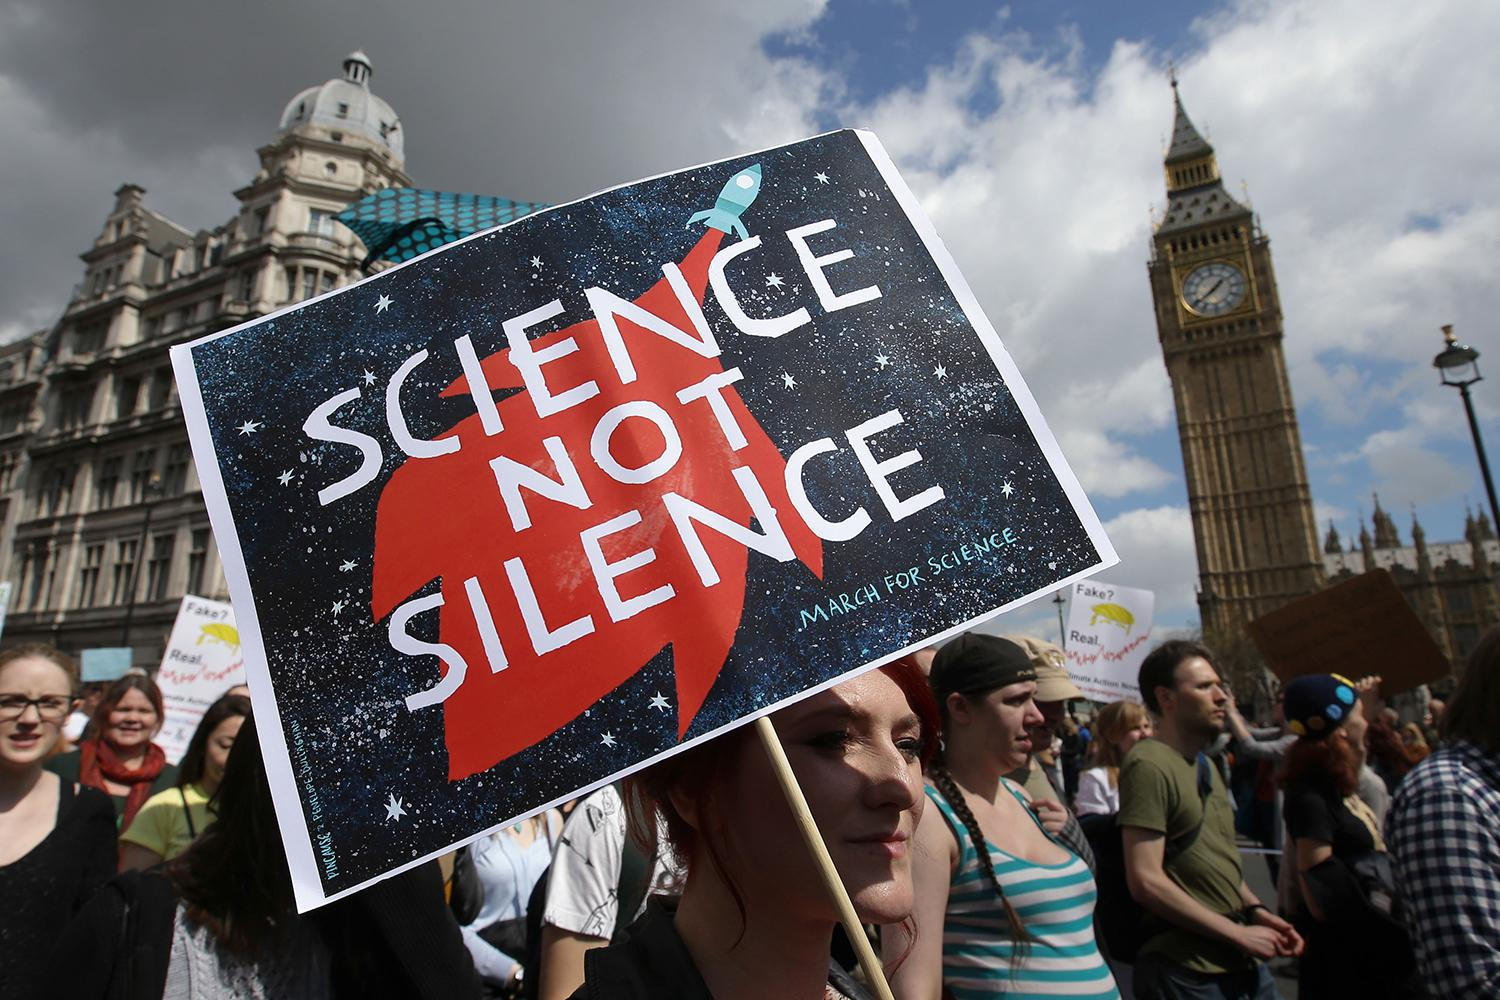 <p>A protestor holds a placard as scientists and science enthusiasts participate in the 'March for Science' which celebrates the scientific method, in Westminster, central London on April 22, 2017, Earth Day. (Daniel Leal-Olivas/AFP/Getty Images) </p>